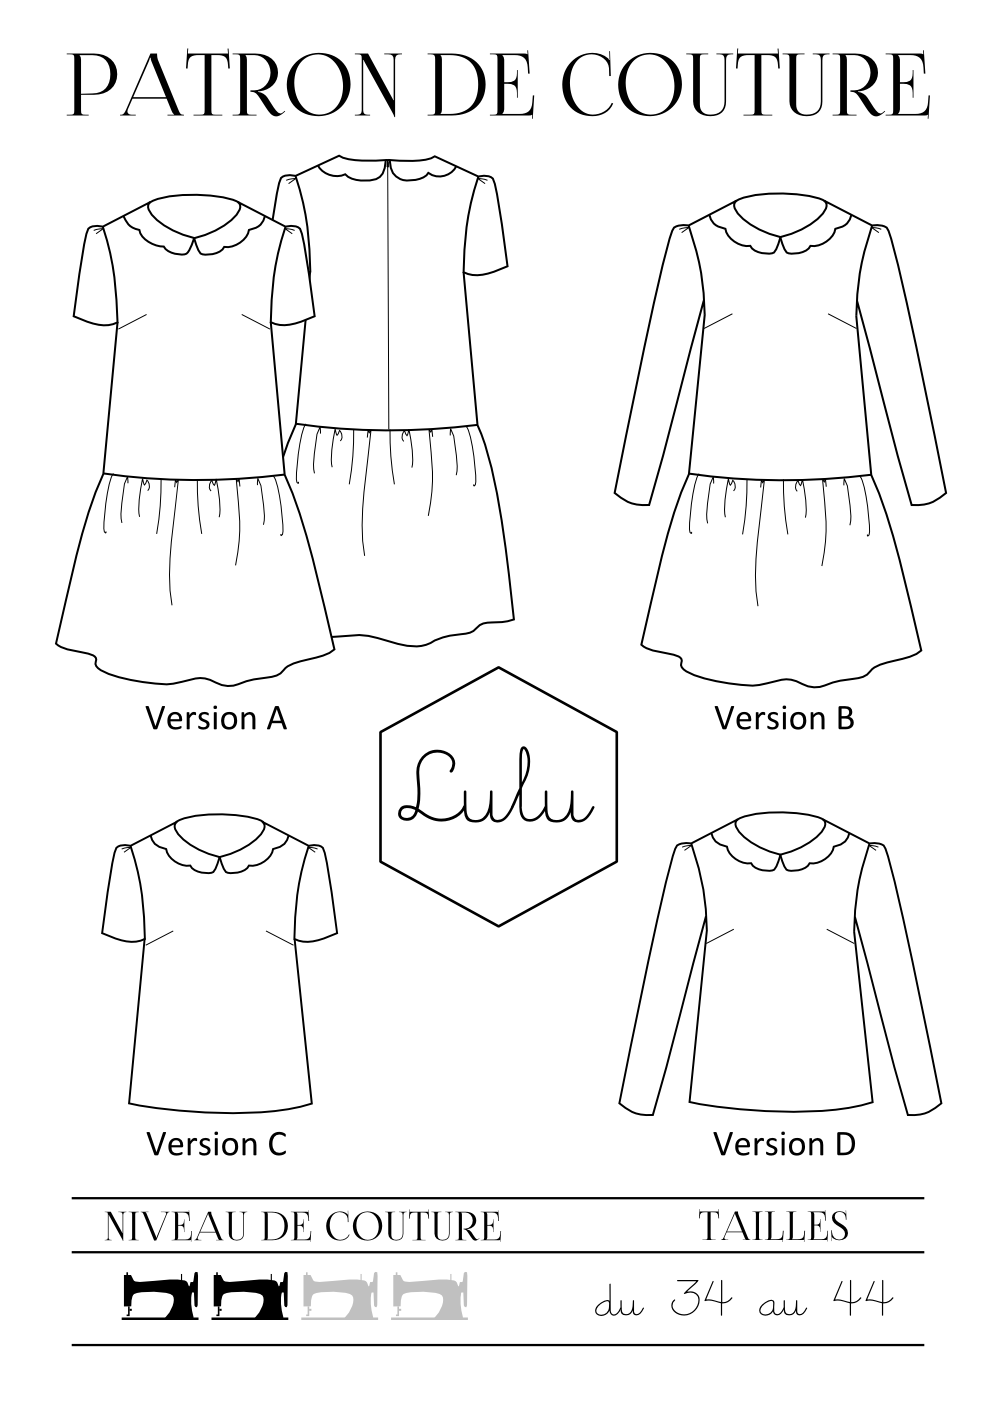 Lulu dress versions